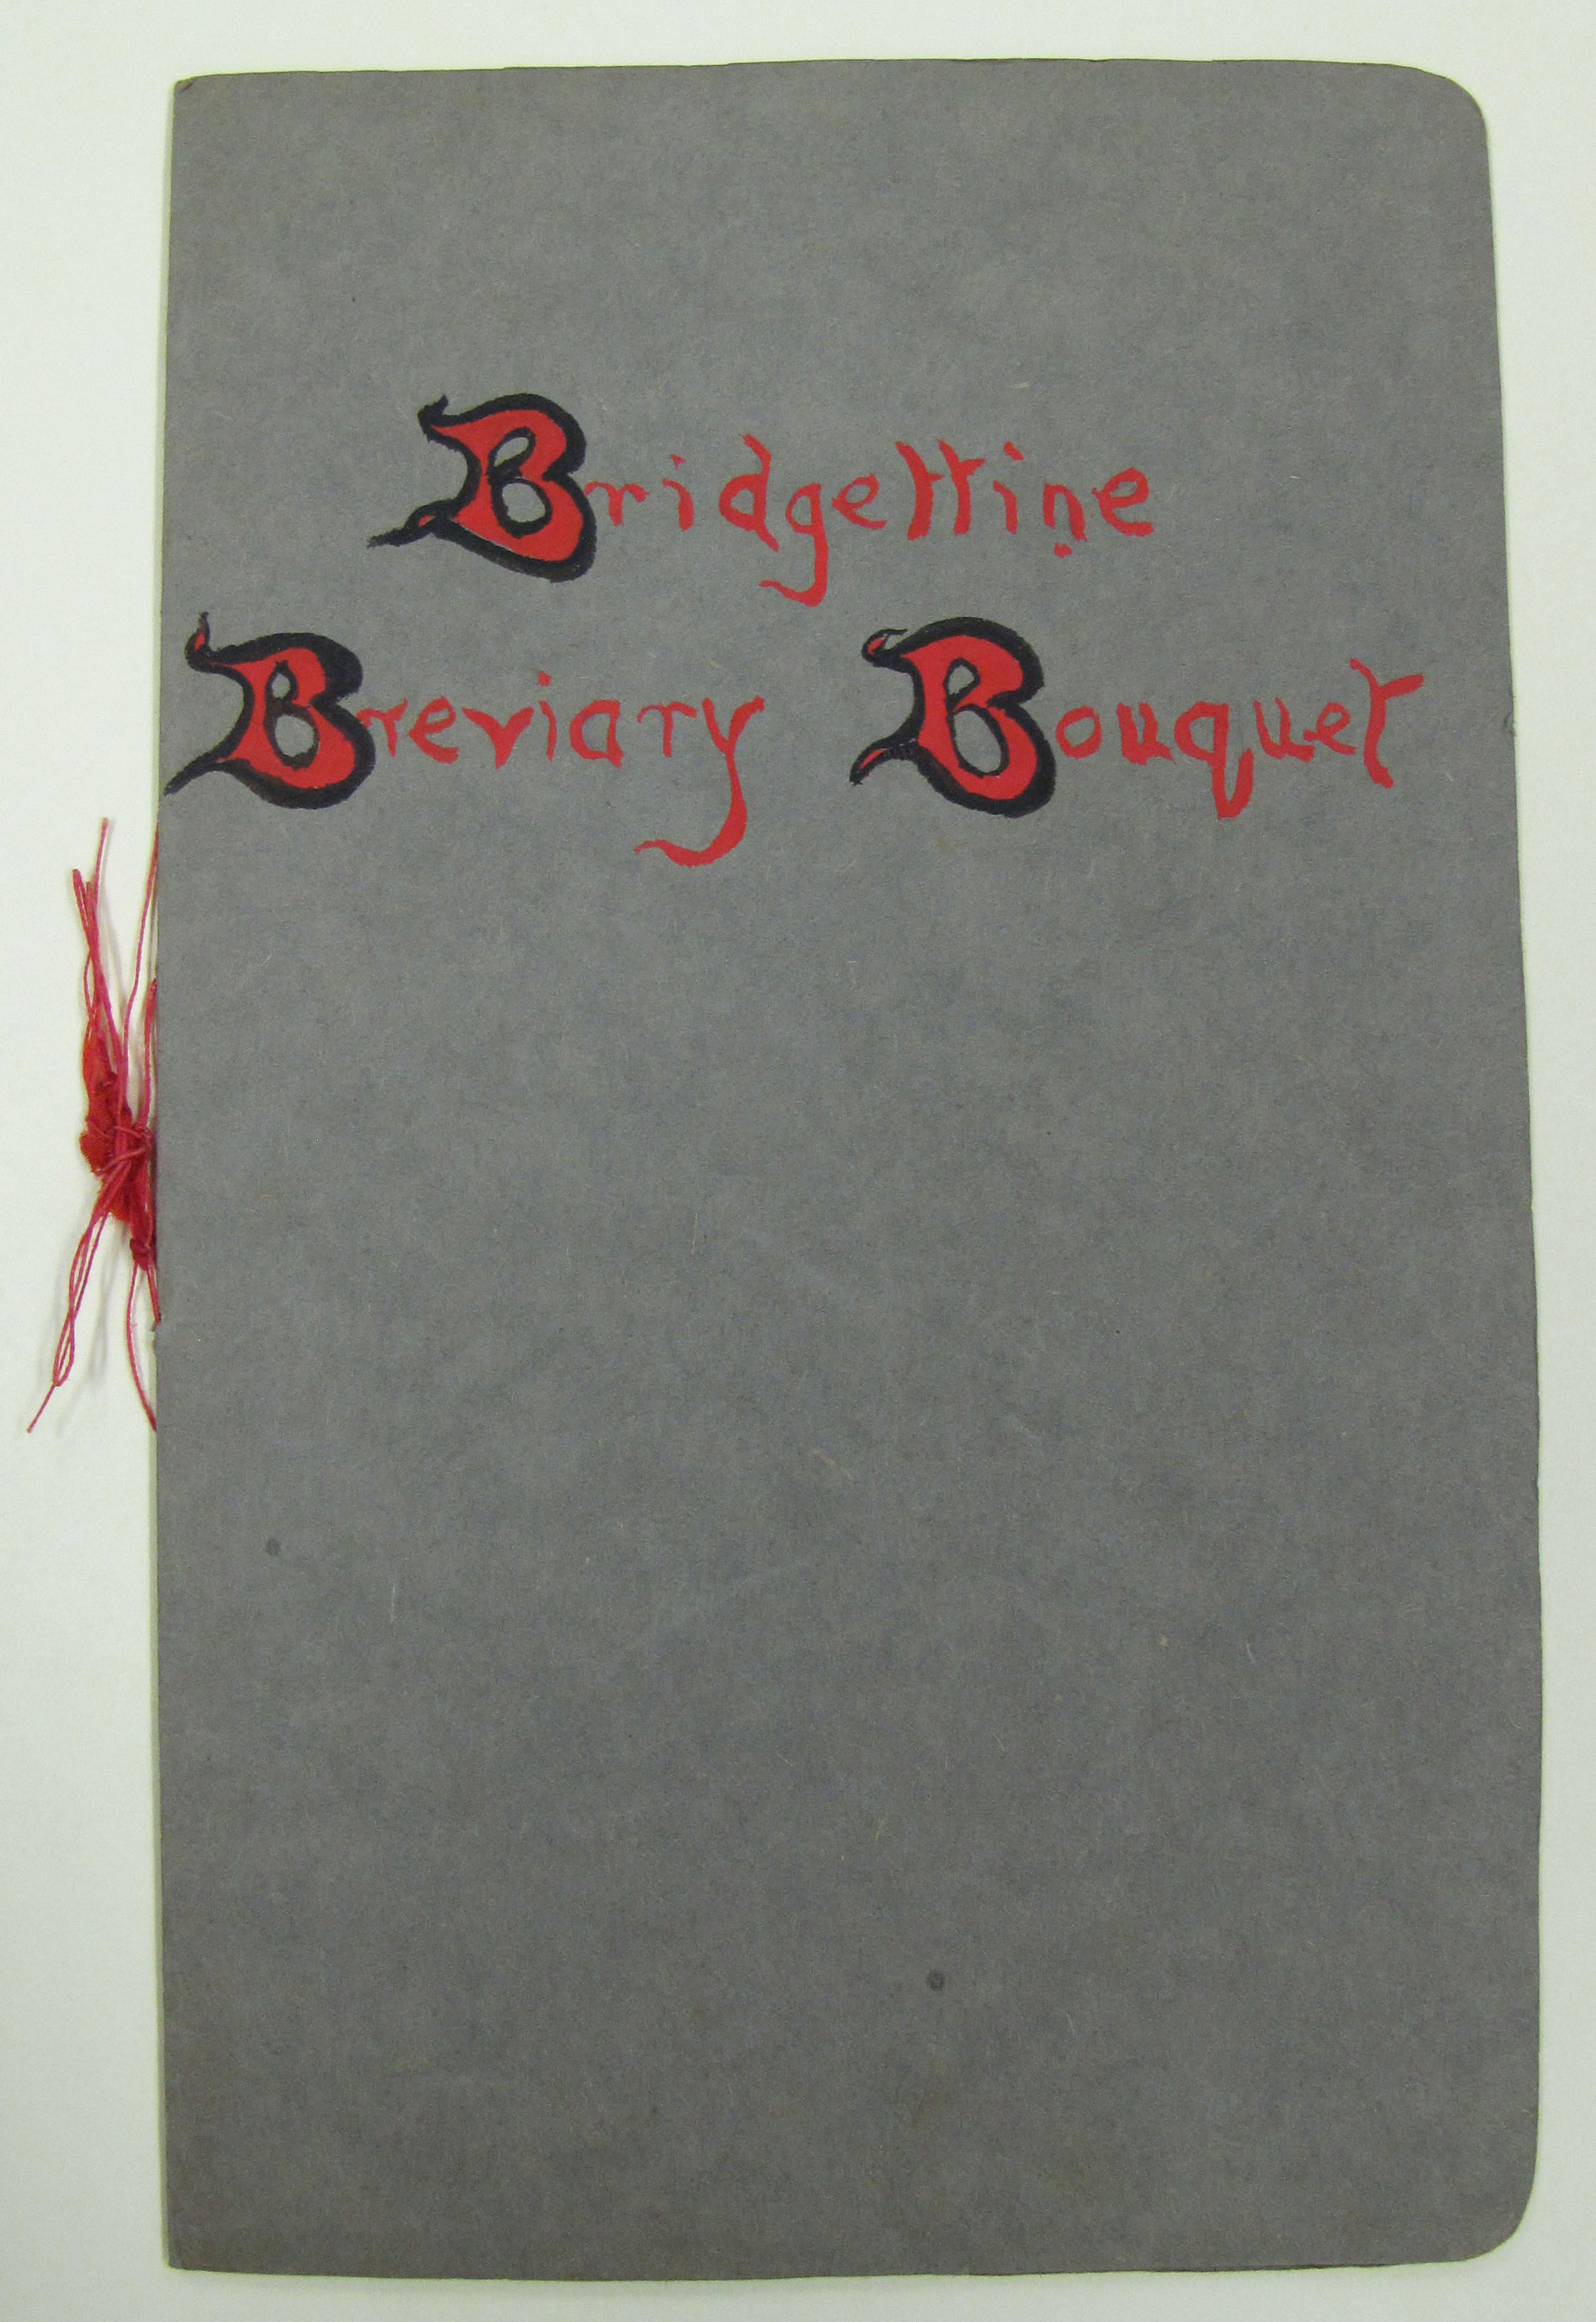 Booklet entitled, 'Bridgettine Breviary Bouquet' [EUL MS 389/PERS/JOCELYN]. Provided for research and reference only. Permission to publish, copy, or otherwise use this work must be obtained from University of Exeter Special Collections (http://as.exeter.ac.uk/heritage-collections/) and all copyright holders.